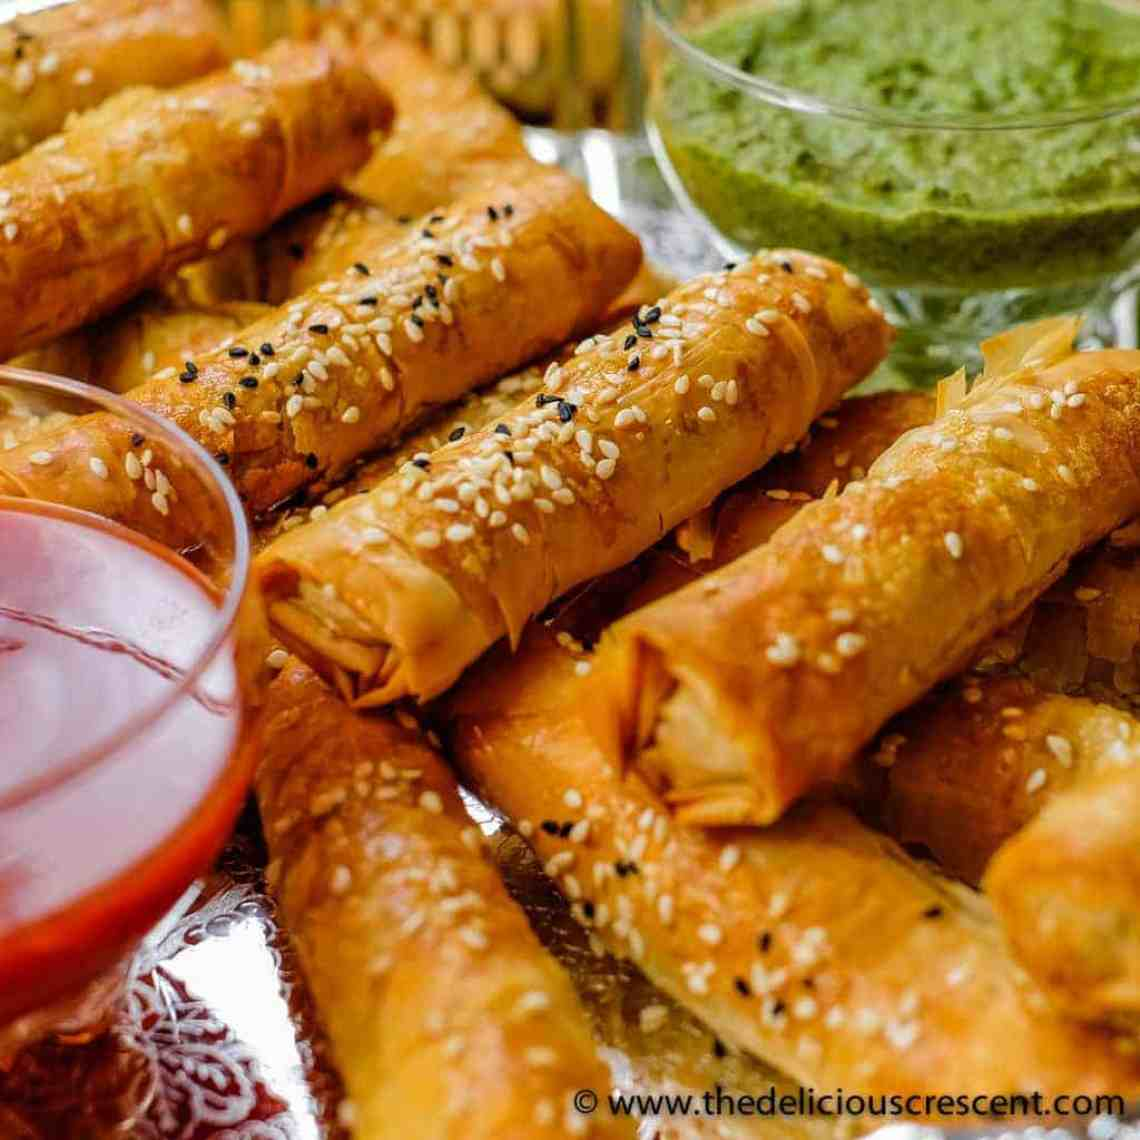 Crispy Potato Edamame Cigar Samosas - an easier and lighter baked version of a hugely popular spicy Indian snack, loaded with flavor and boosted in nutrients. These samosas freeze very well too.